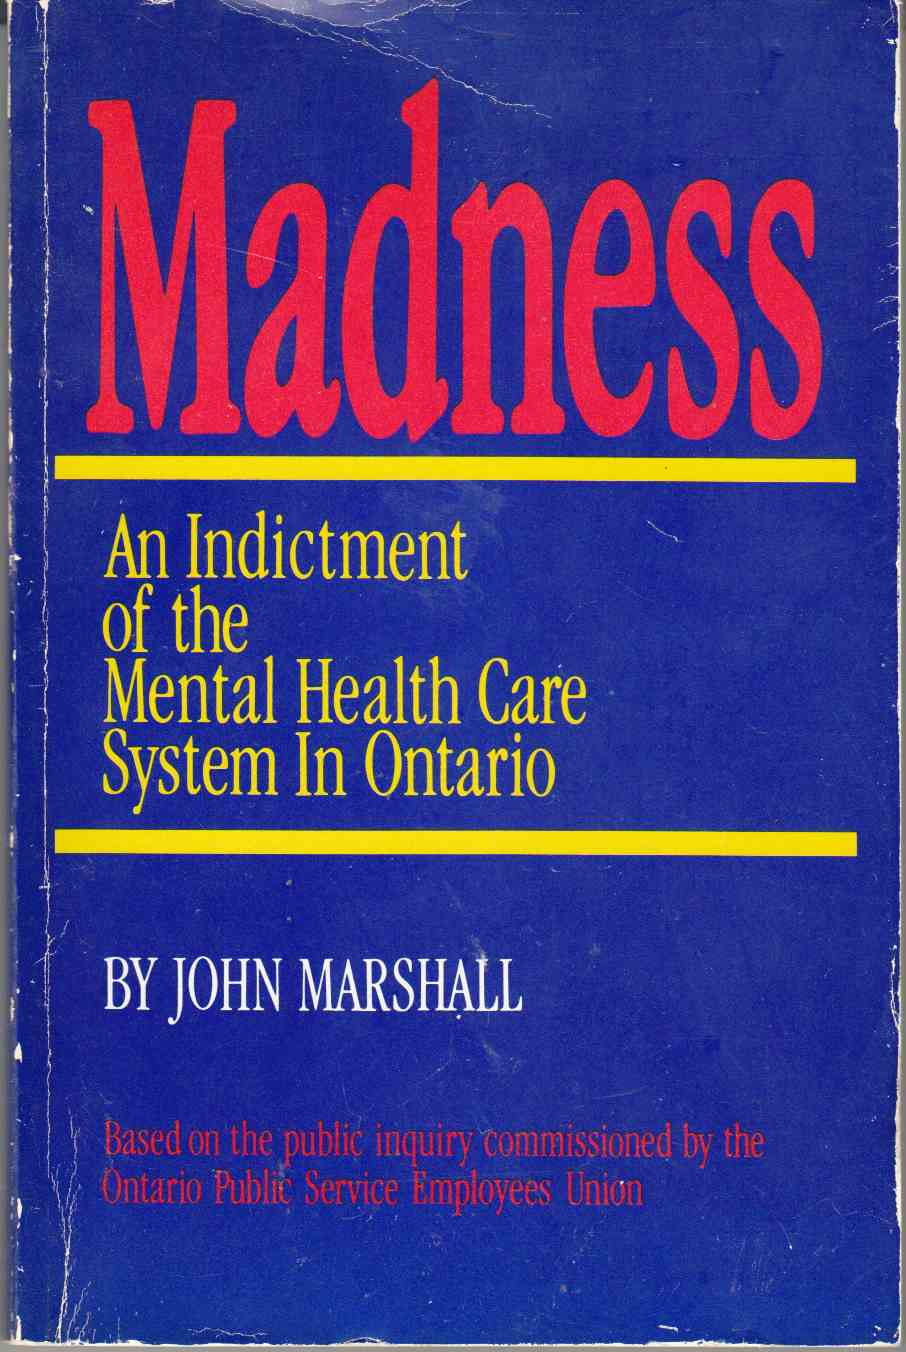 Image for Madness An Indictment of the Mental Health Care System in Ontario